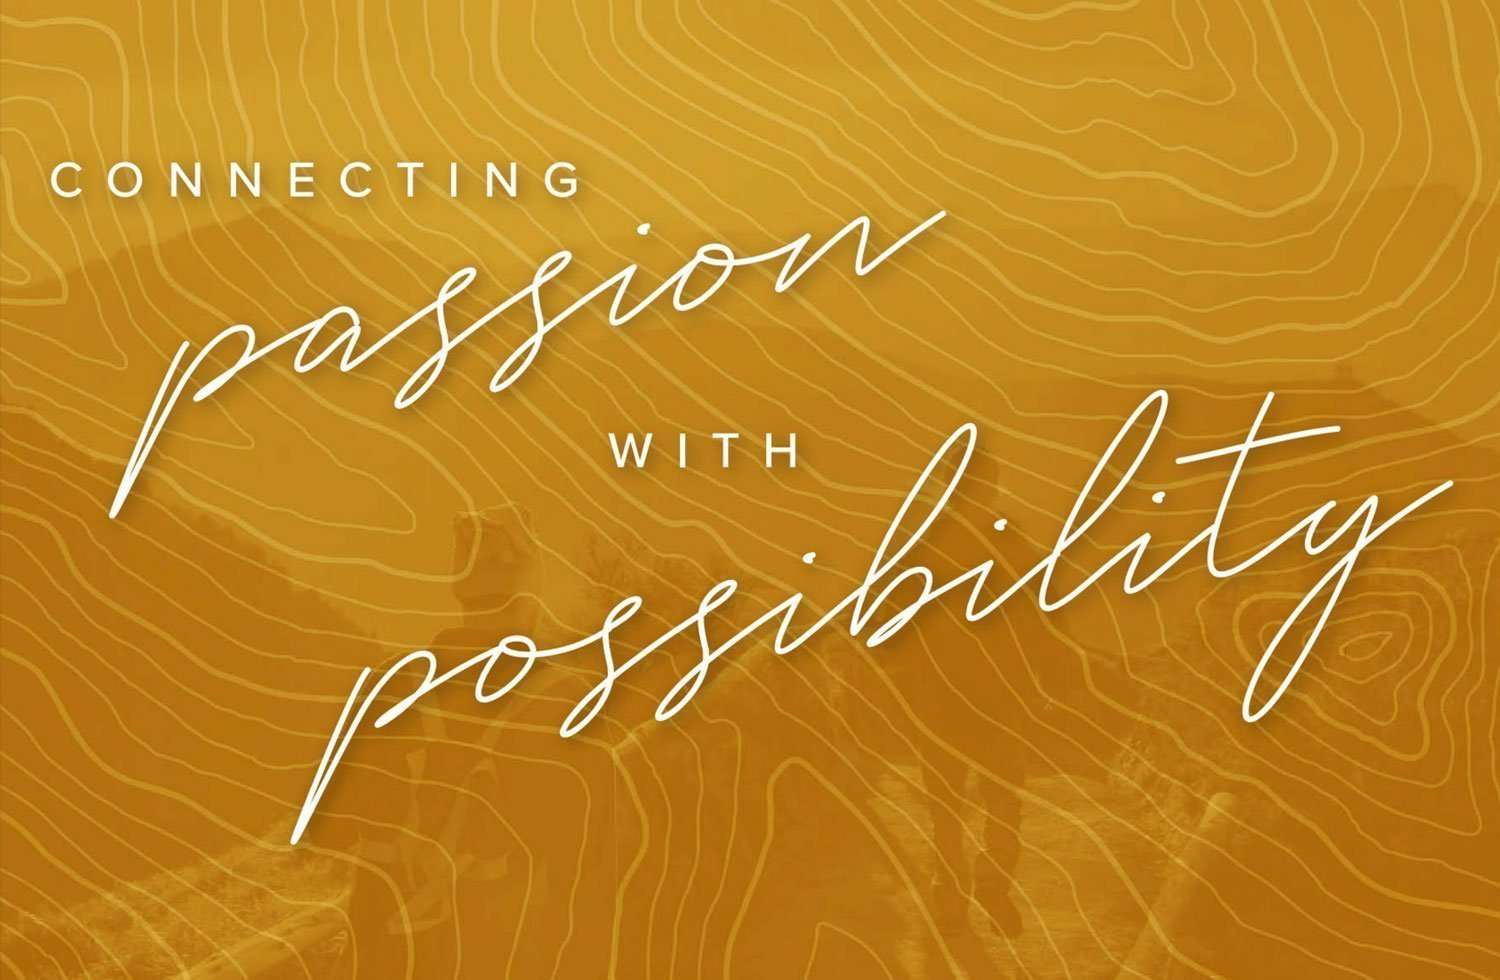 Passion with possibility